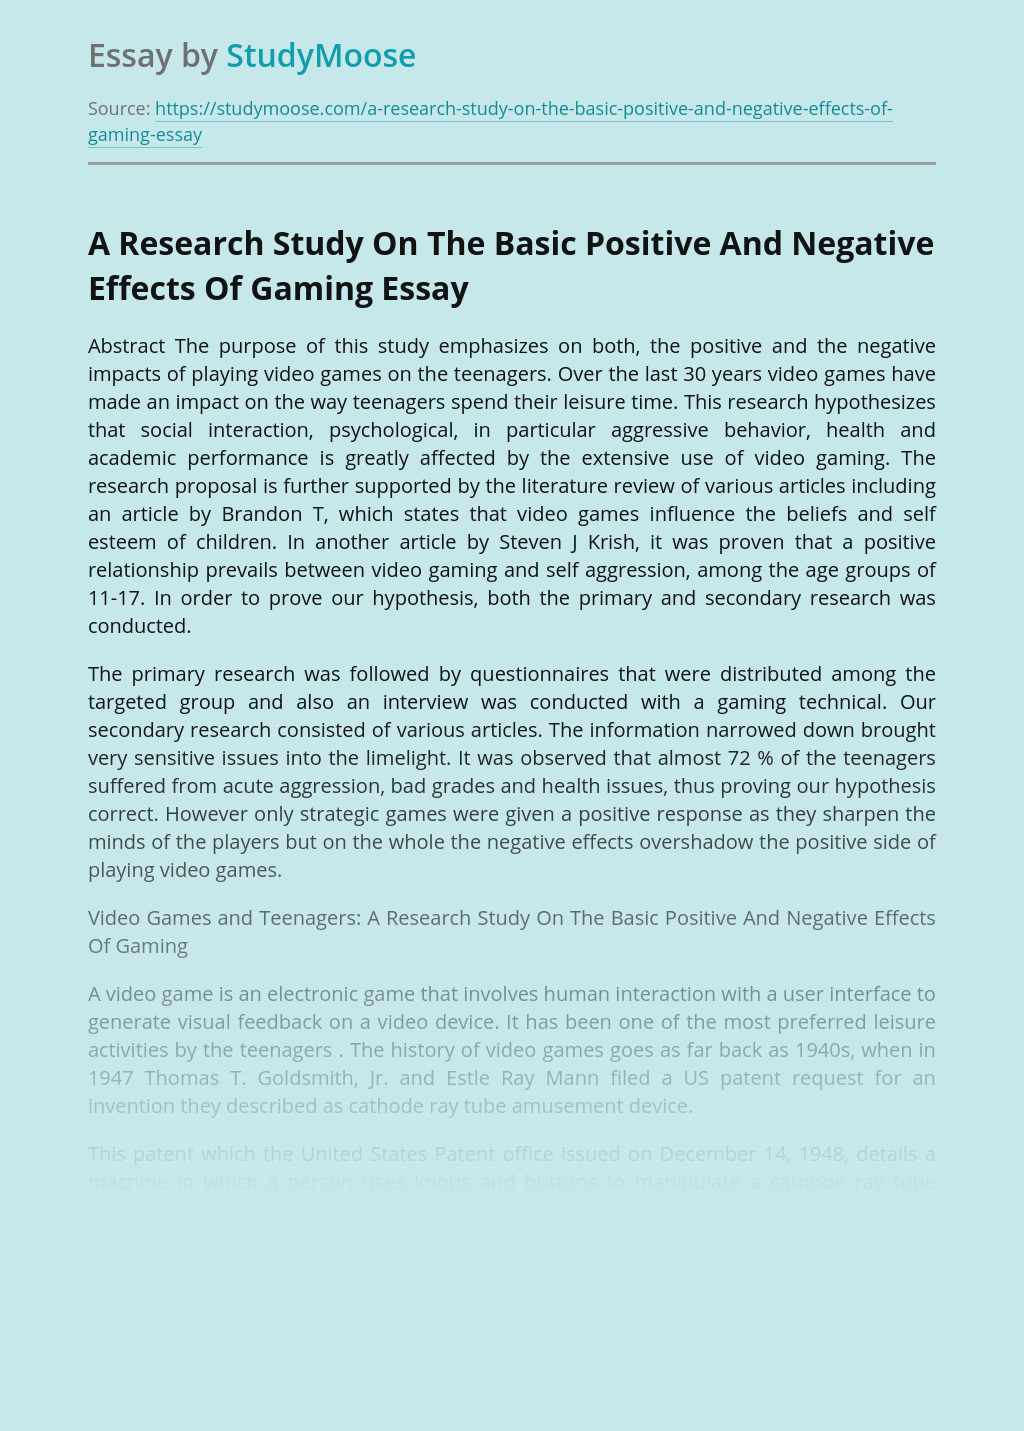 A Research Study On The Basic Positive And Negative Effects Of Gaming